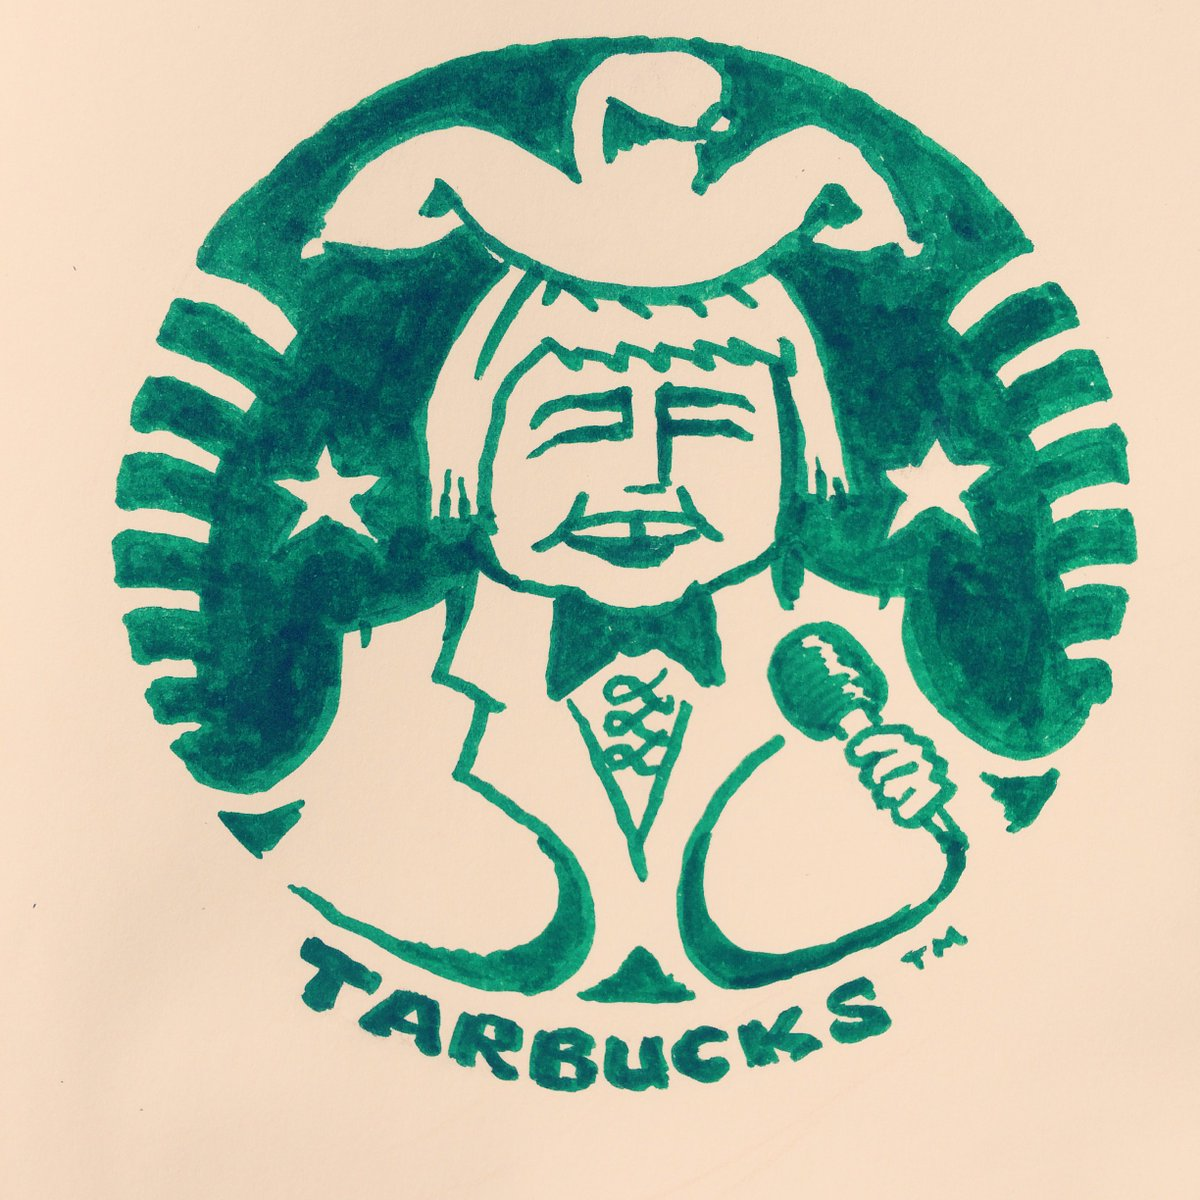 TARBUCKS https://t.co/VqFnYrMVjB